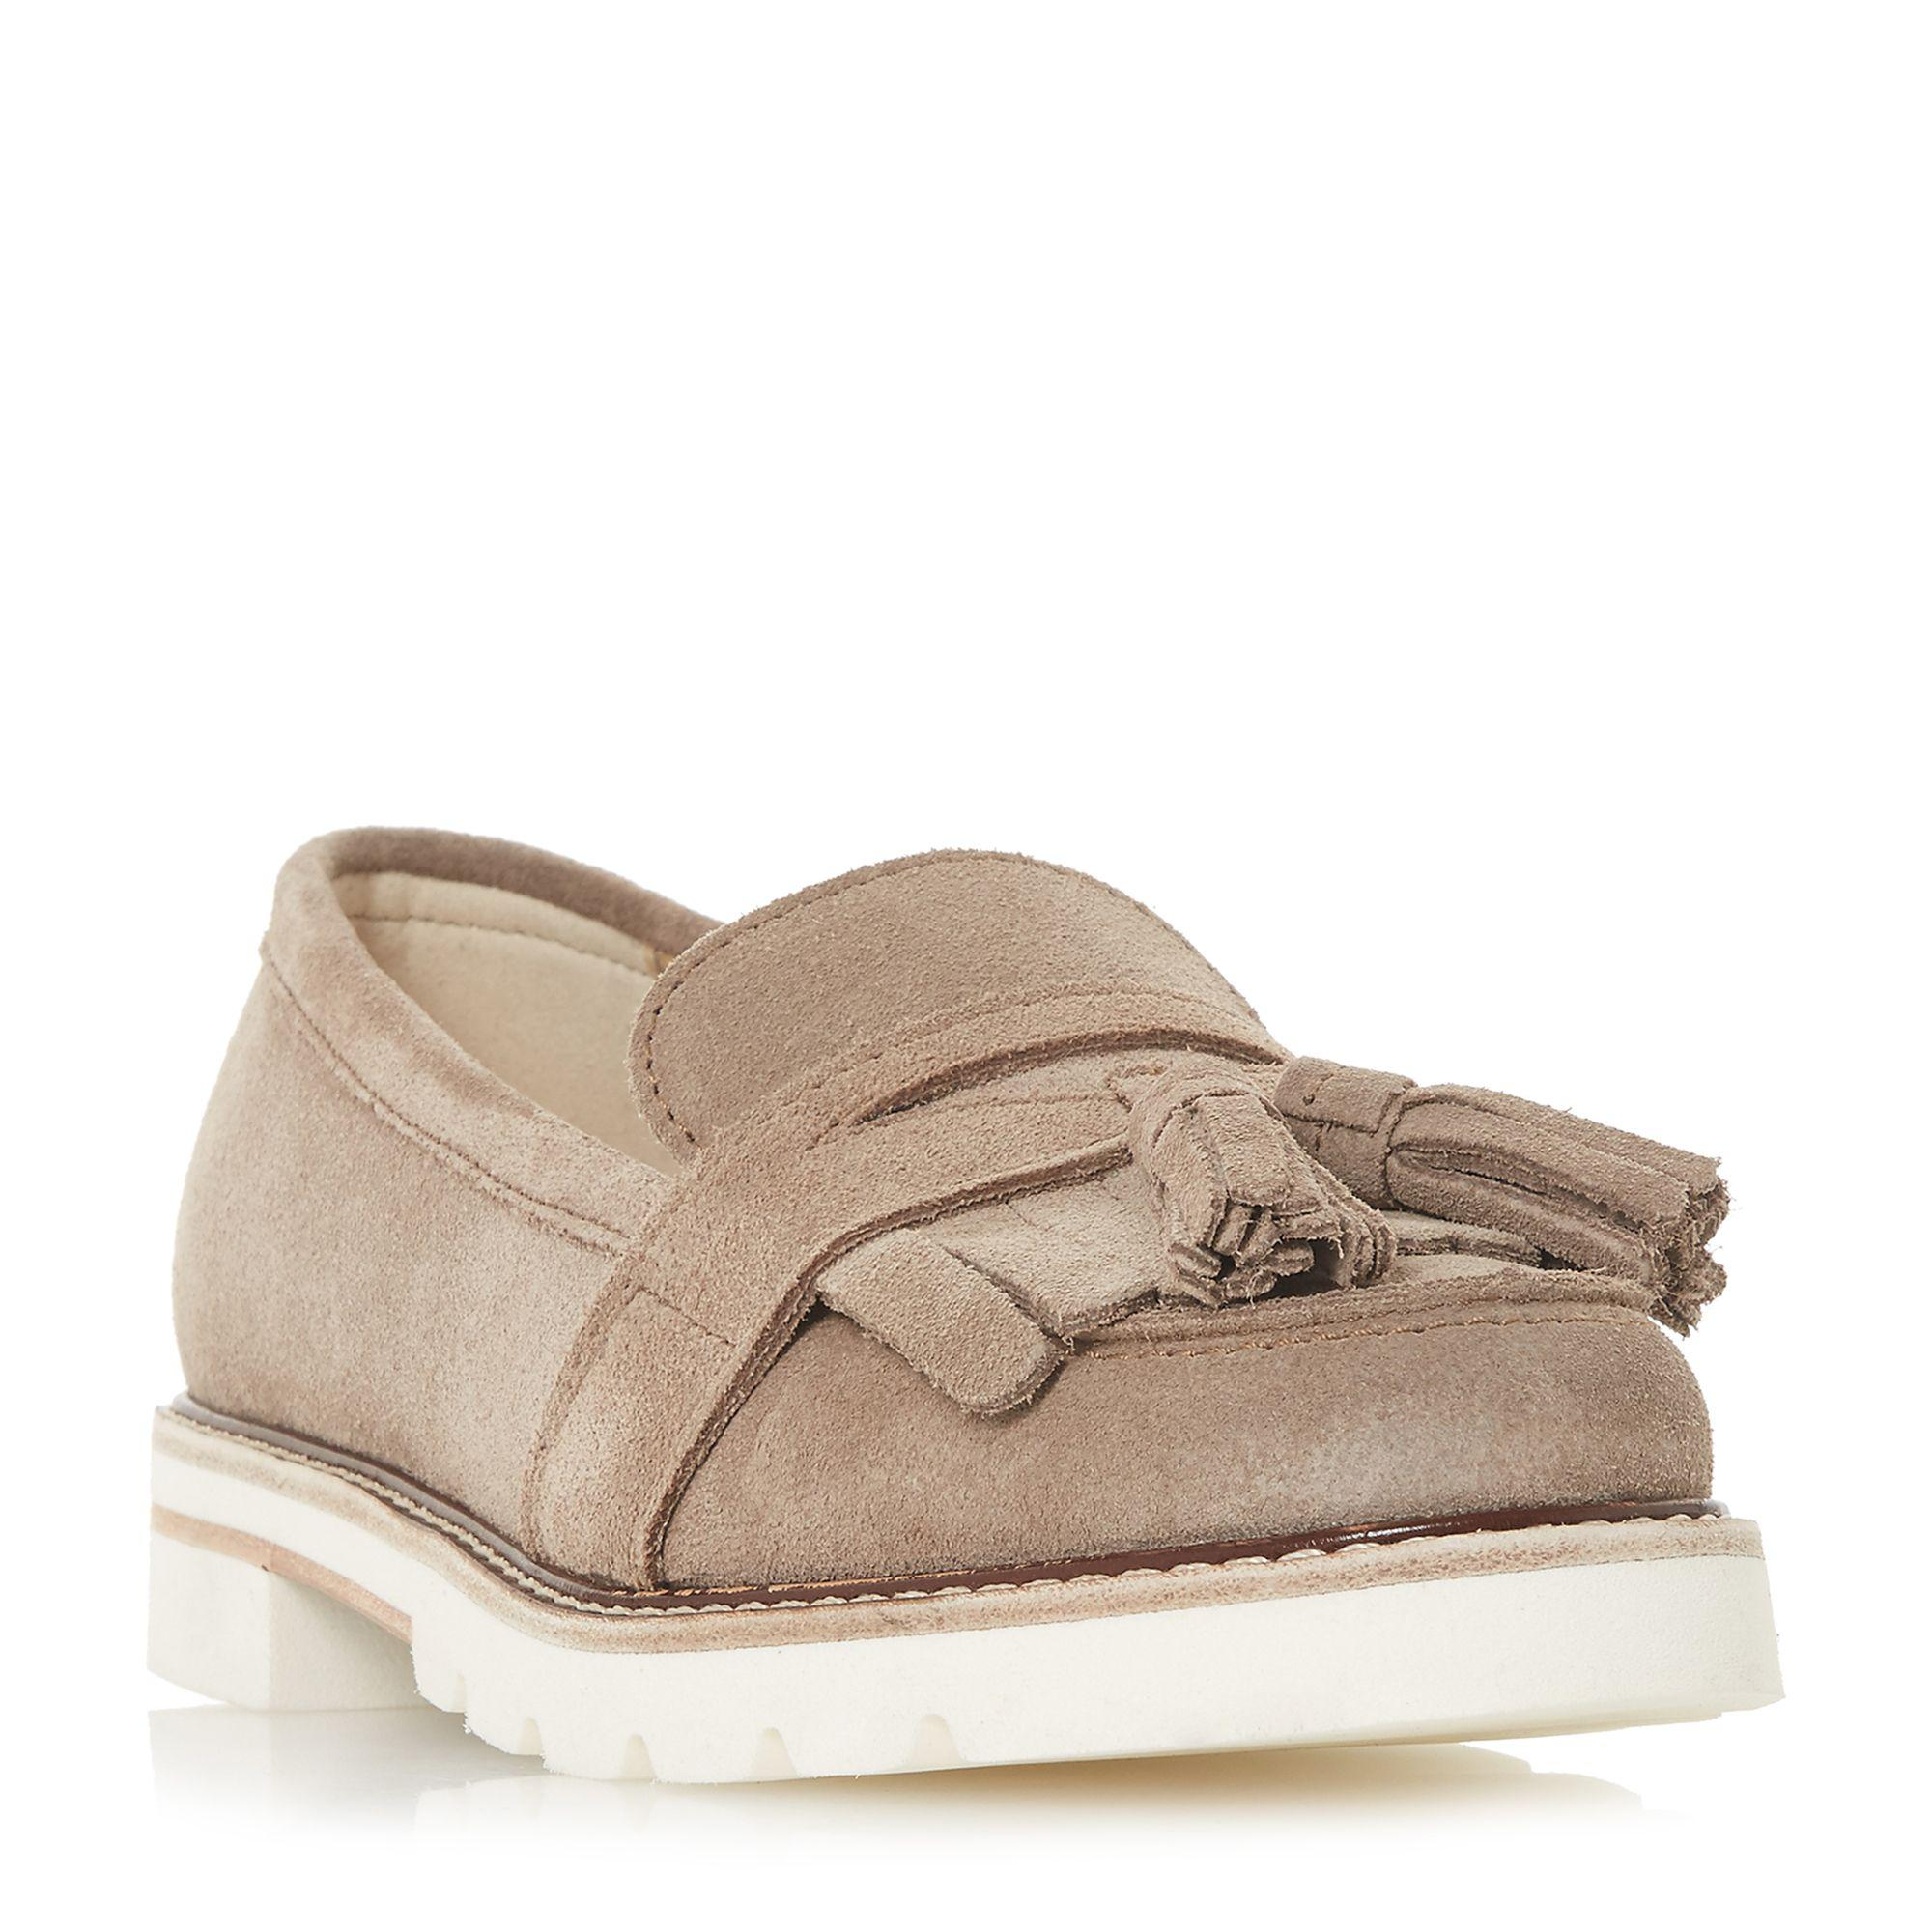 Natural suede 'Gennaa' loafers huge surprise online brand new unisex cheap price new arrival cheap online tJw5s